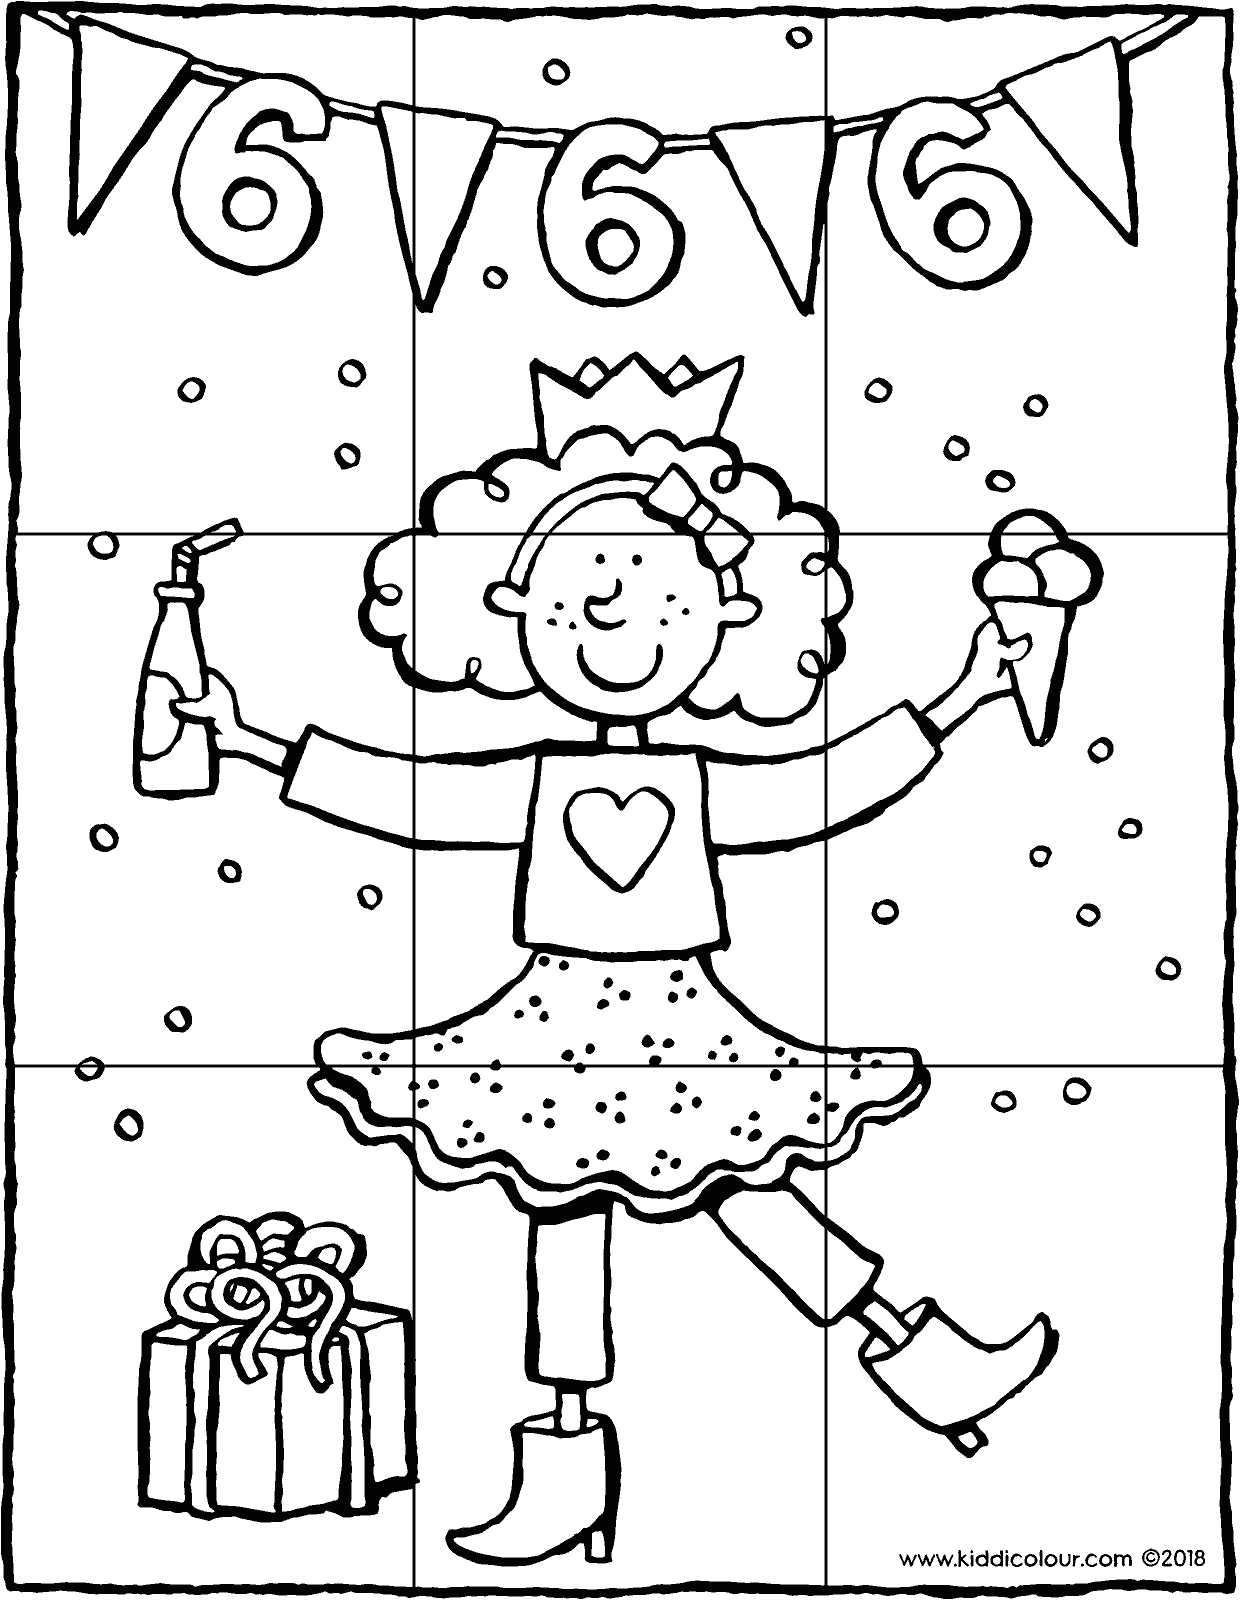 birthday puzzle for 6-year old girl colouring page drawing picture 01V